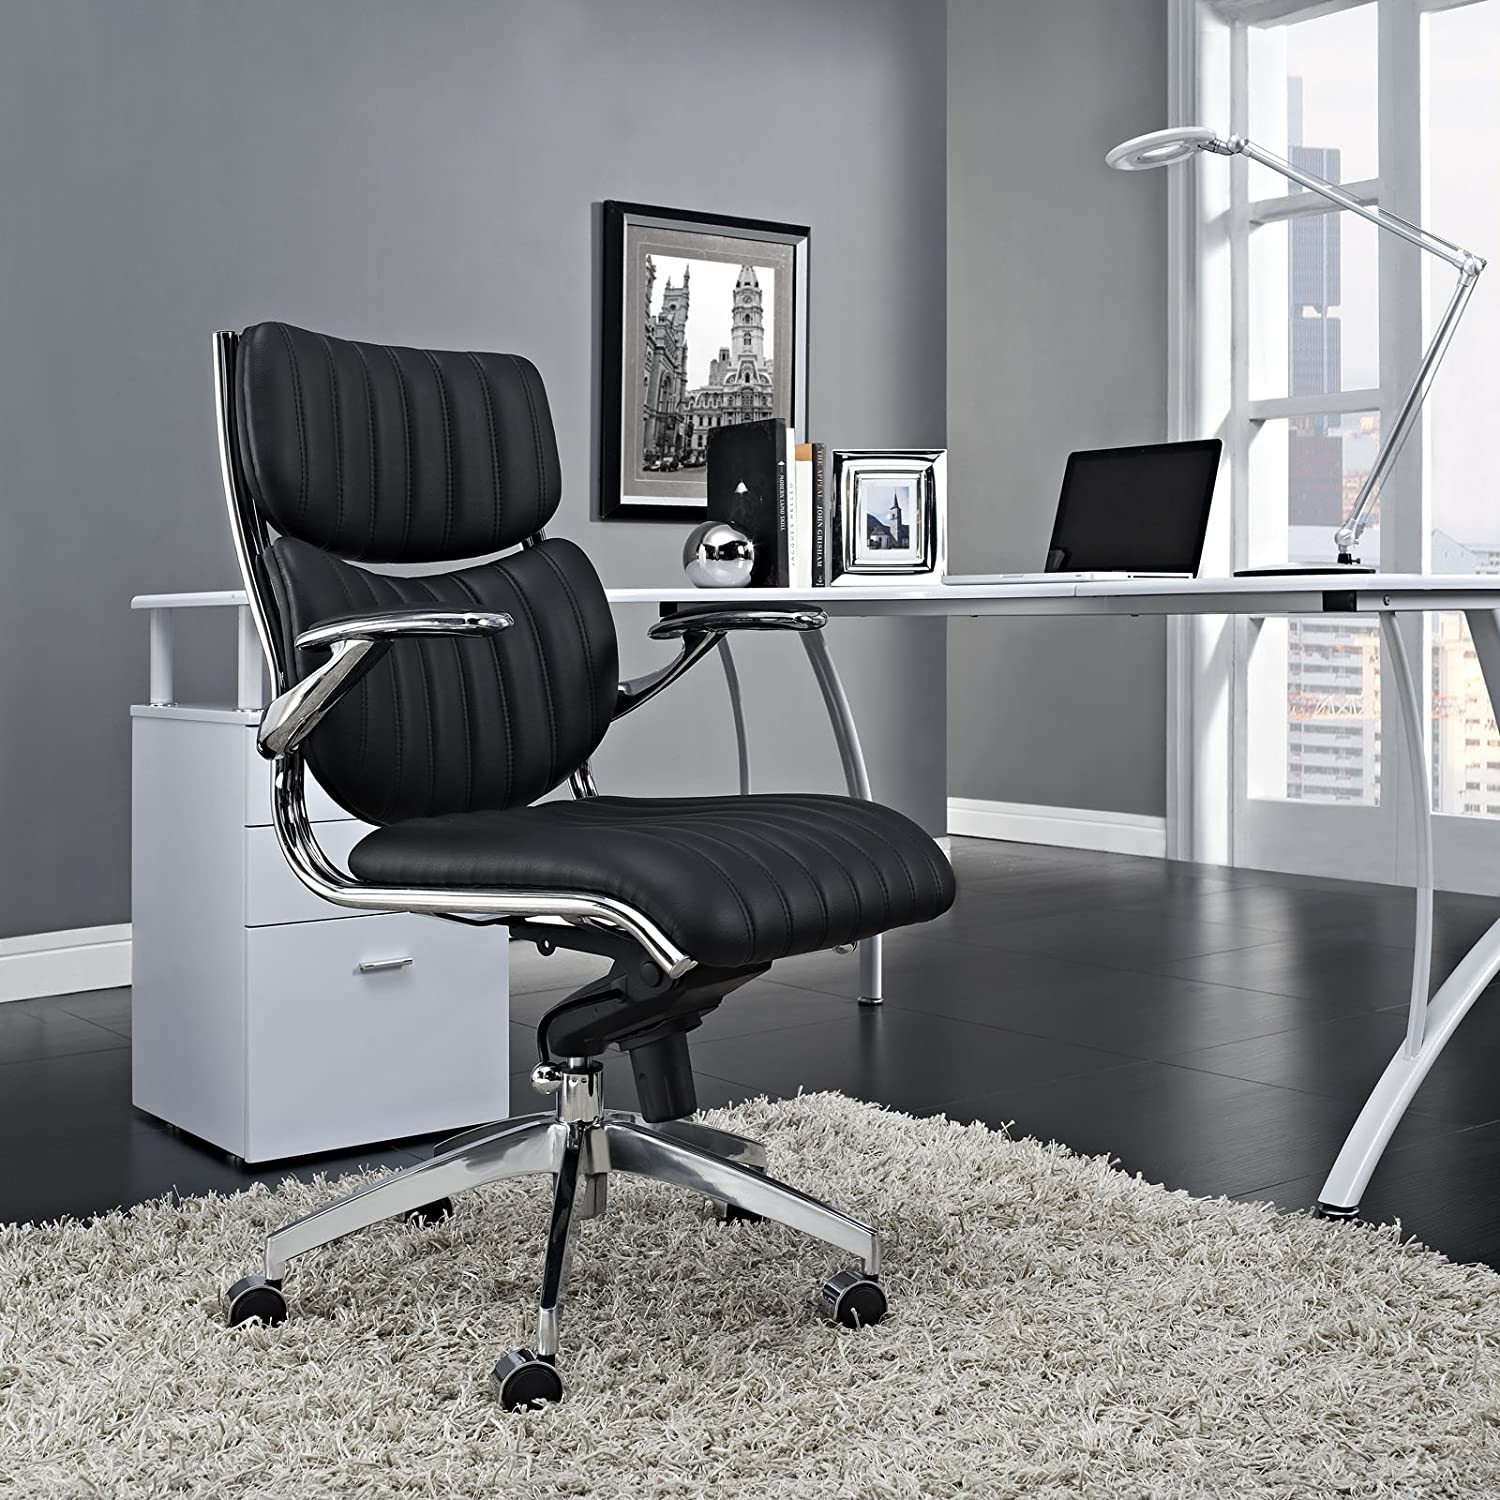 Modway Escape Ribbed Faux Leather Ergonomic Computer Desk Office Chair in Black